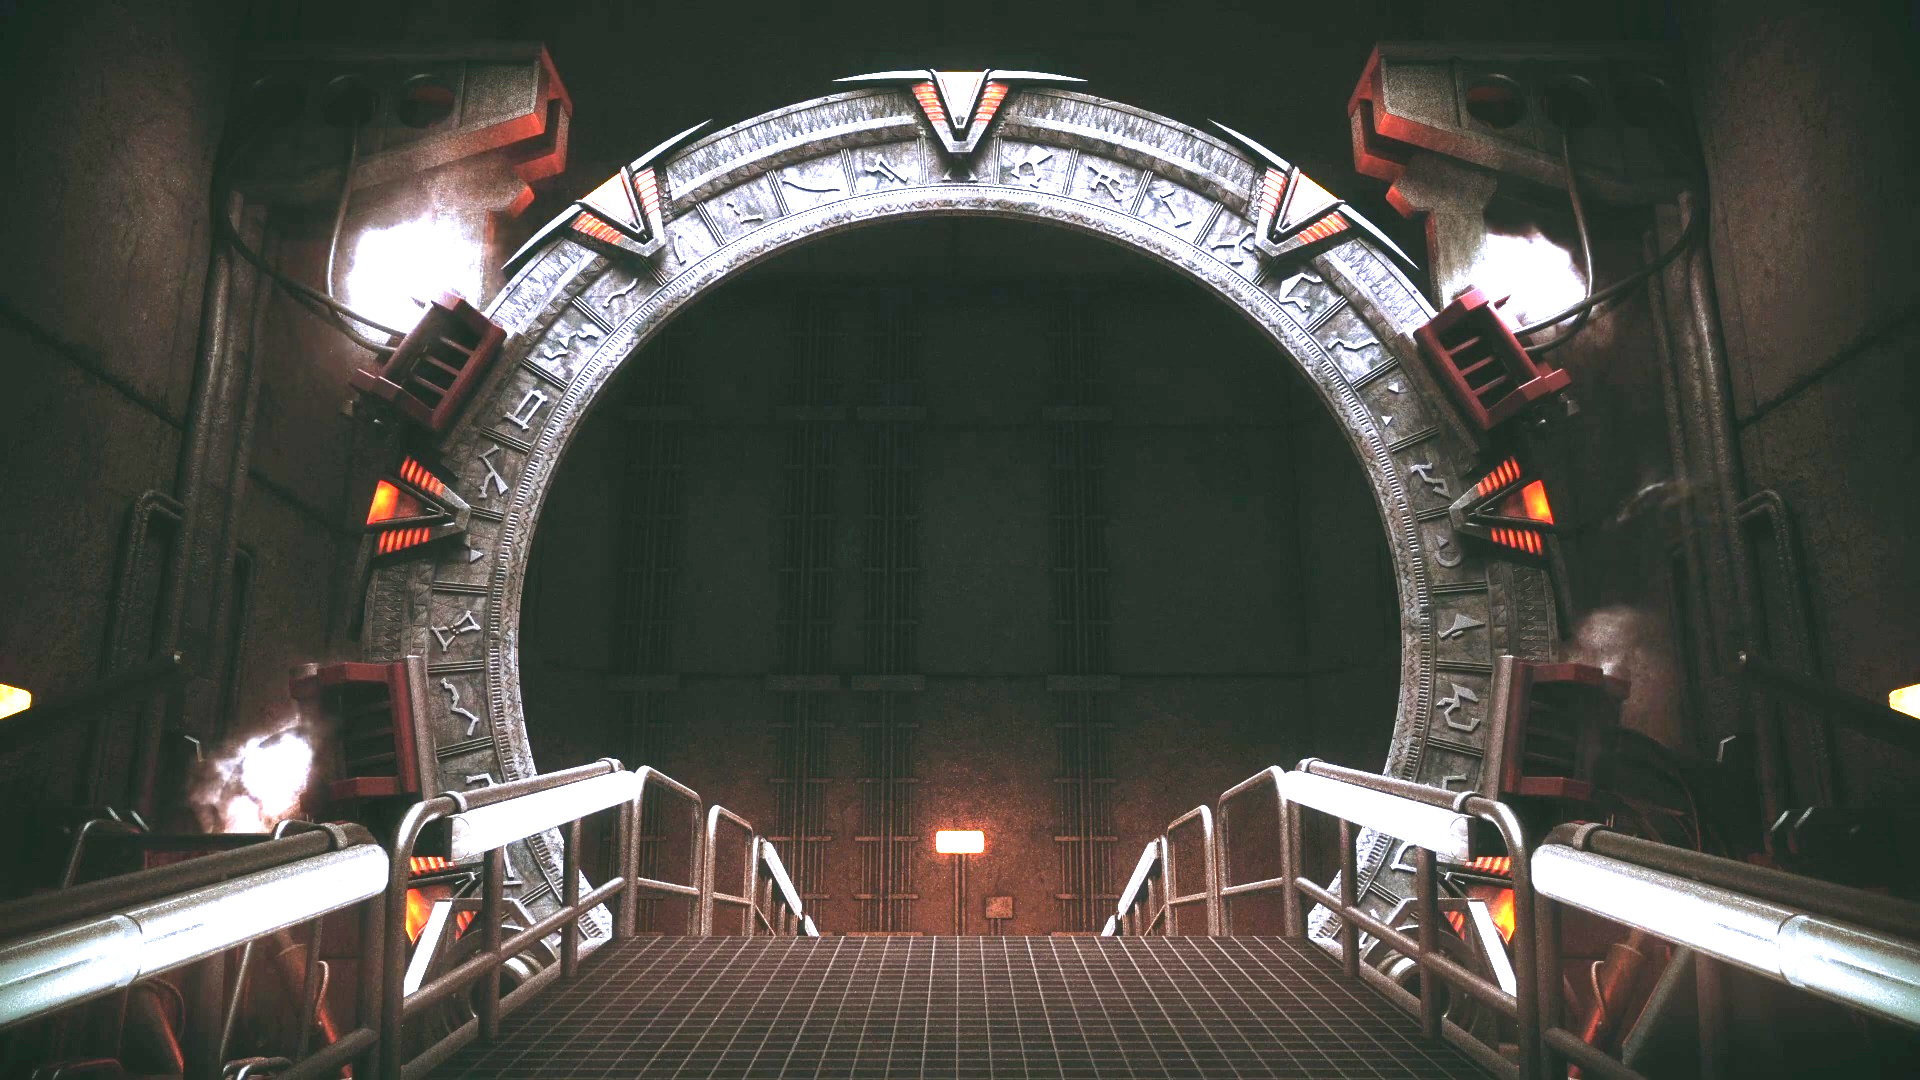 A Stargate strategy game is coming from the makers of Phantom Doctrine